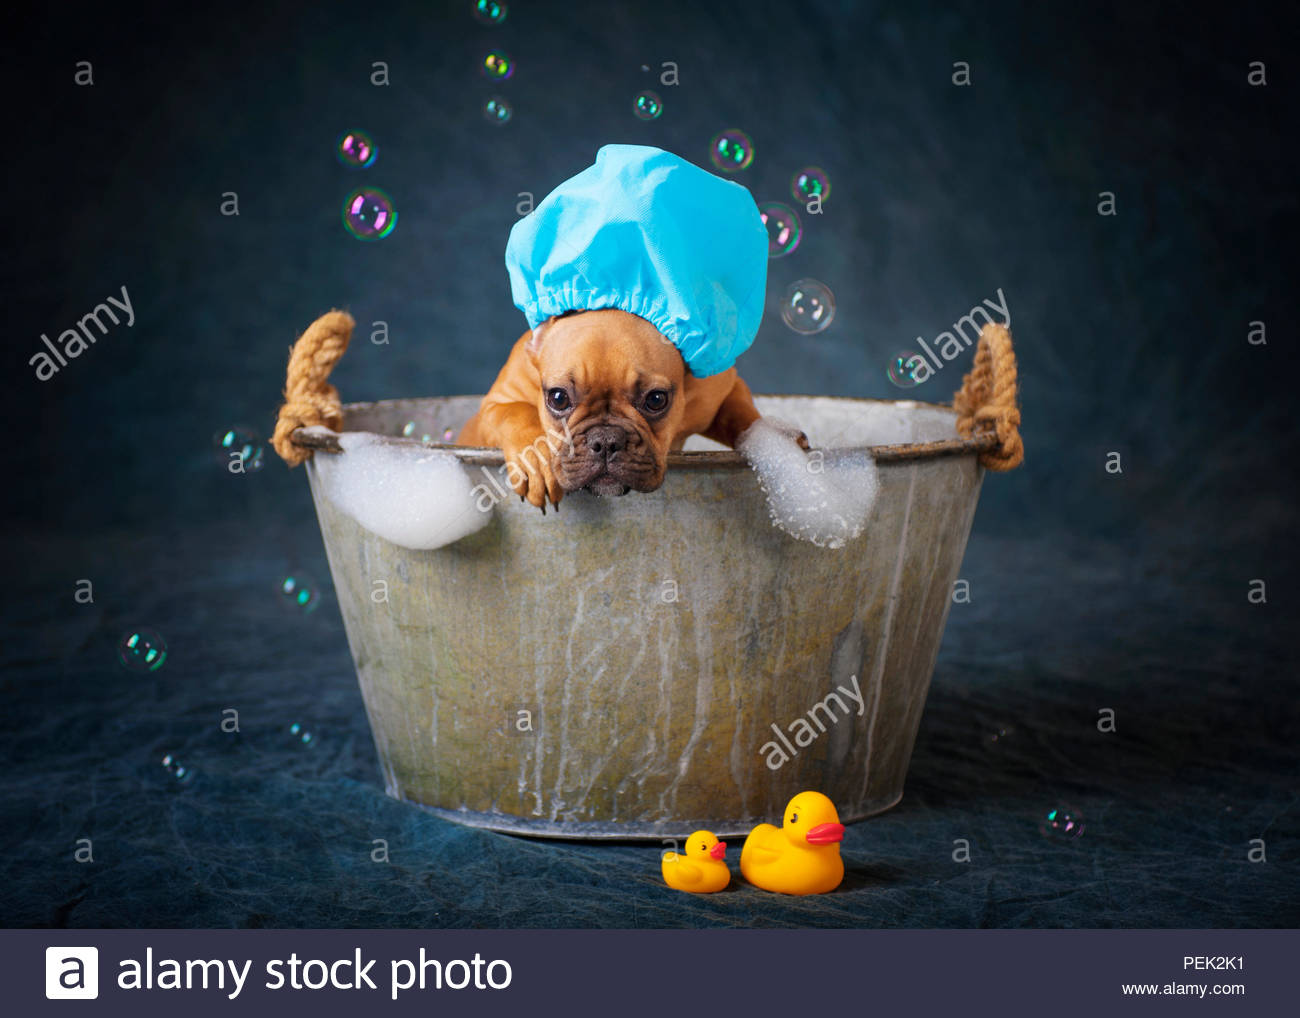 red fawn french bulldog puppy wearing shower cap standing in vintage tub with bubbles on dark blue backdrop - Stock Image